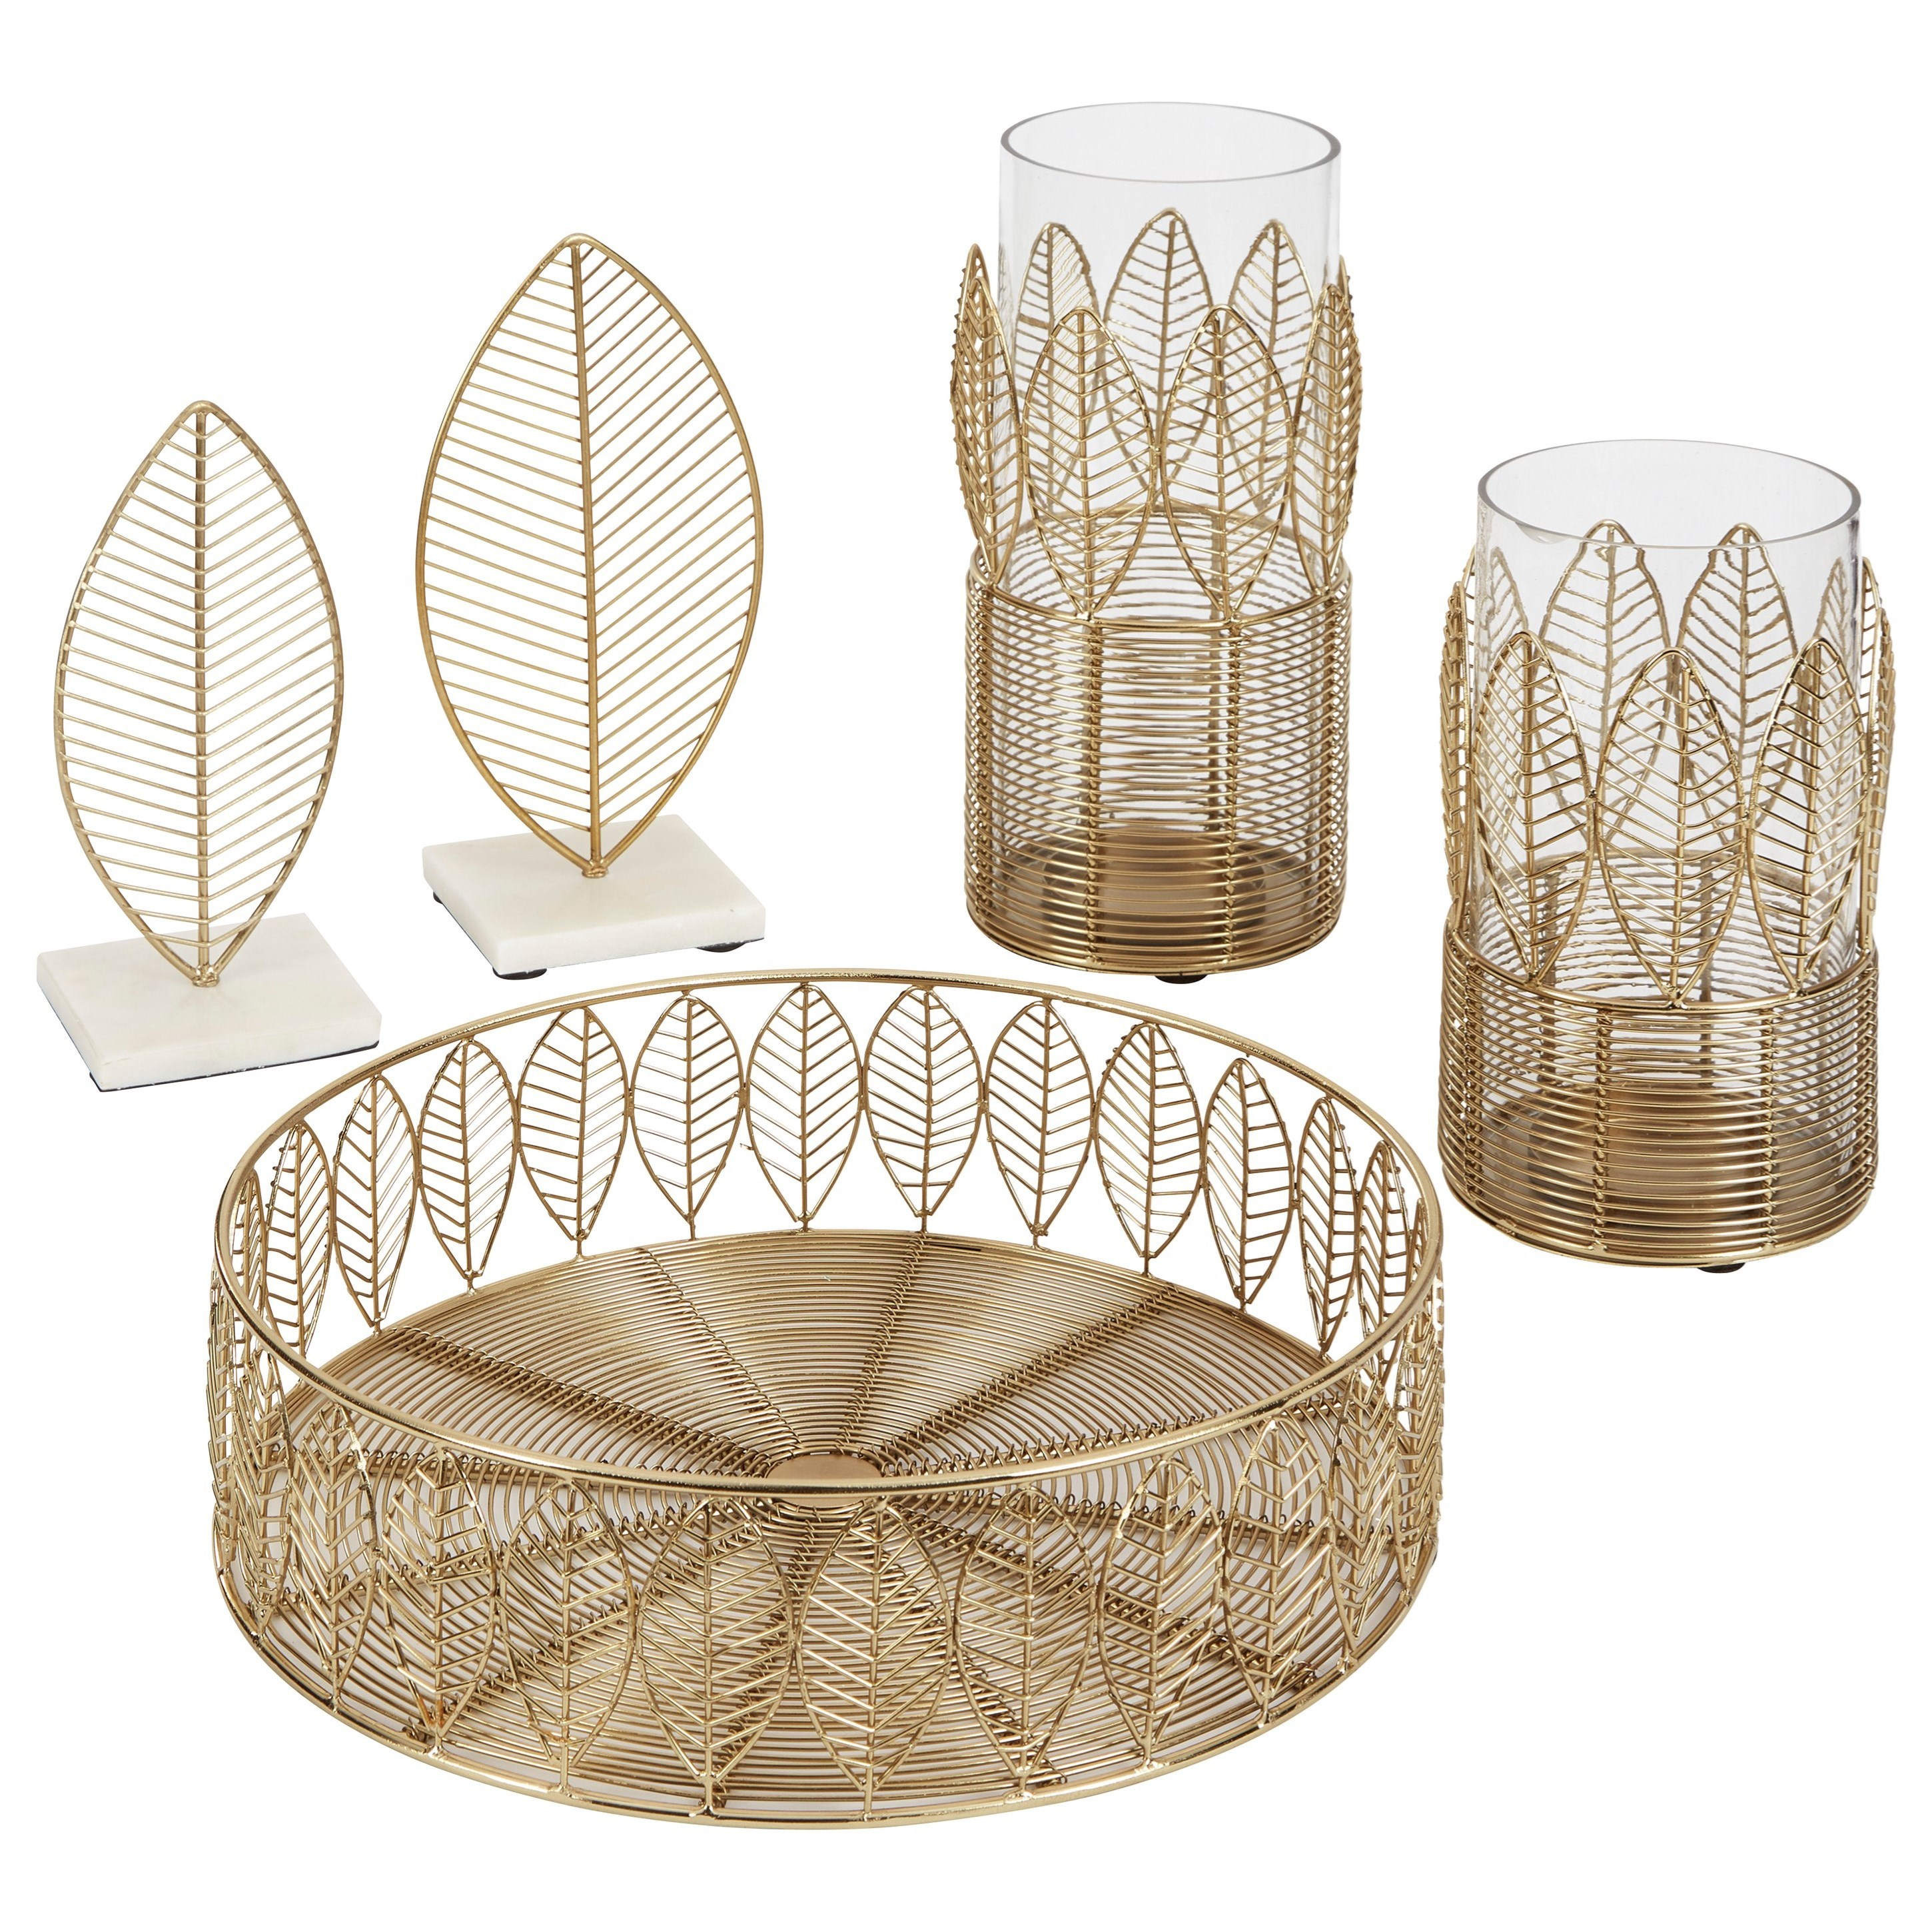 Accents Dimity Gold Finish Accessory Set by Ashley Signature Design at Rooms and Rest